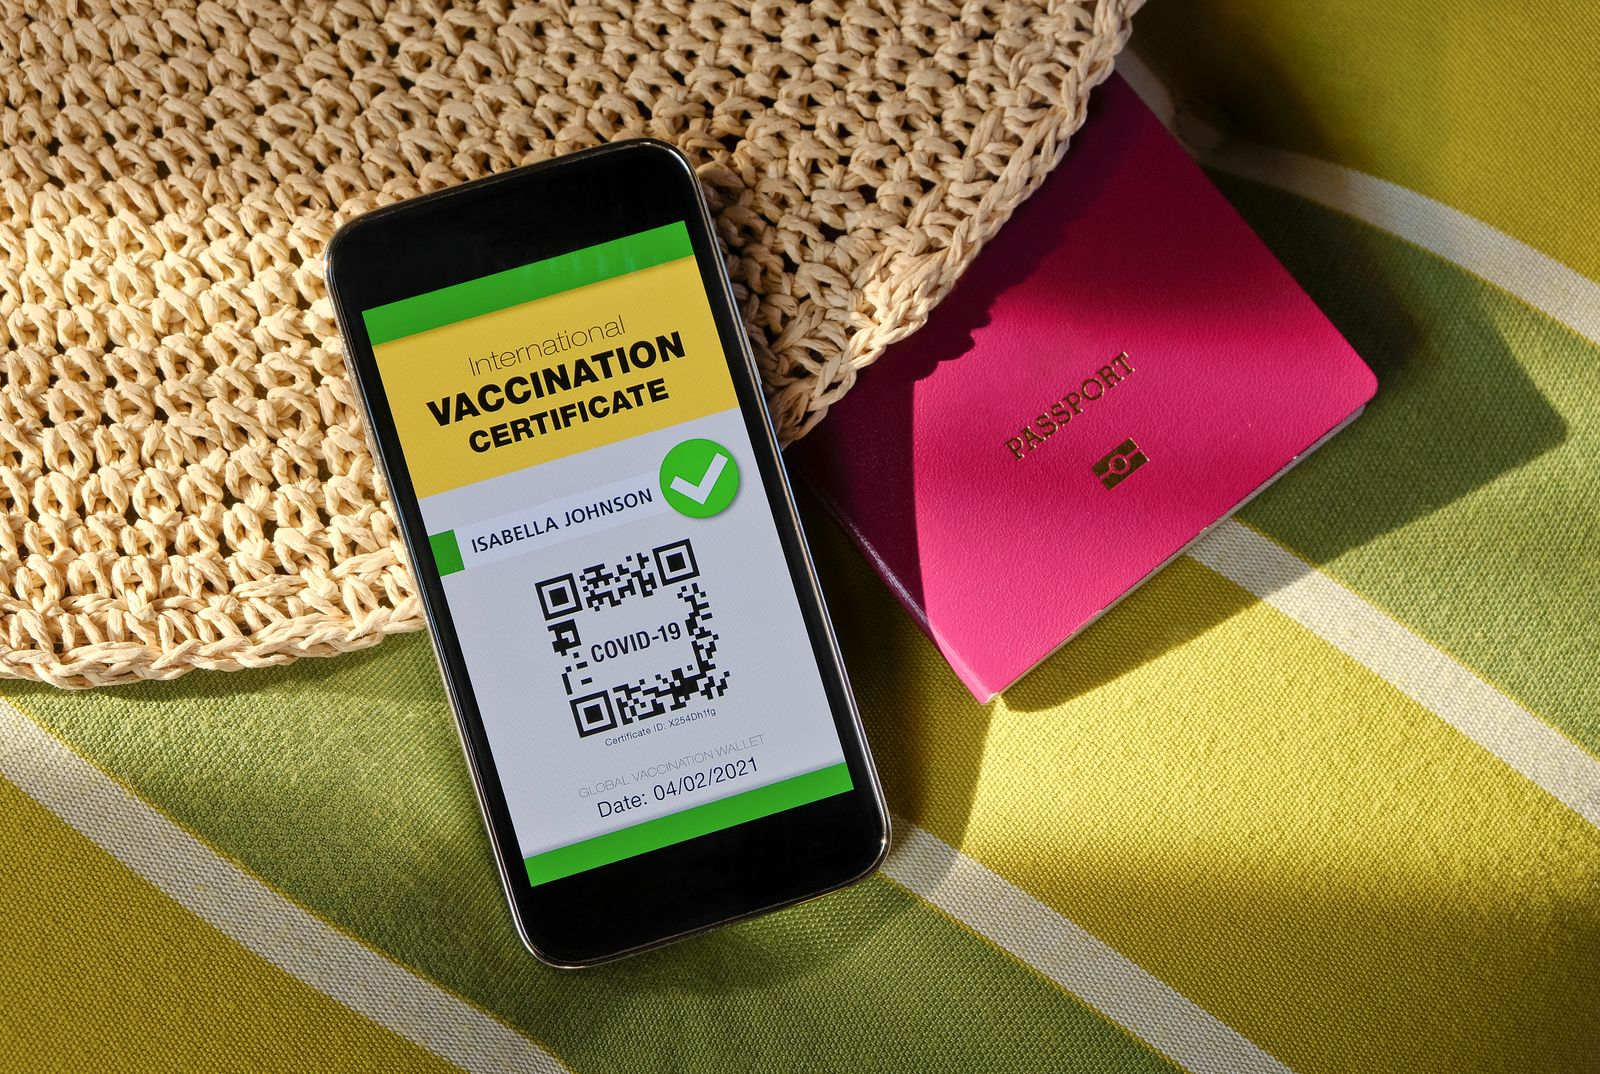 Mobile phone with digital international vaccination certificate for COVID-19